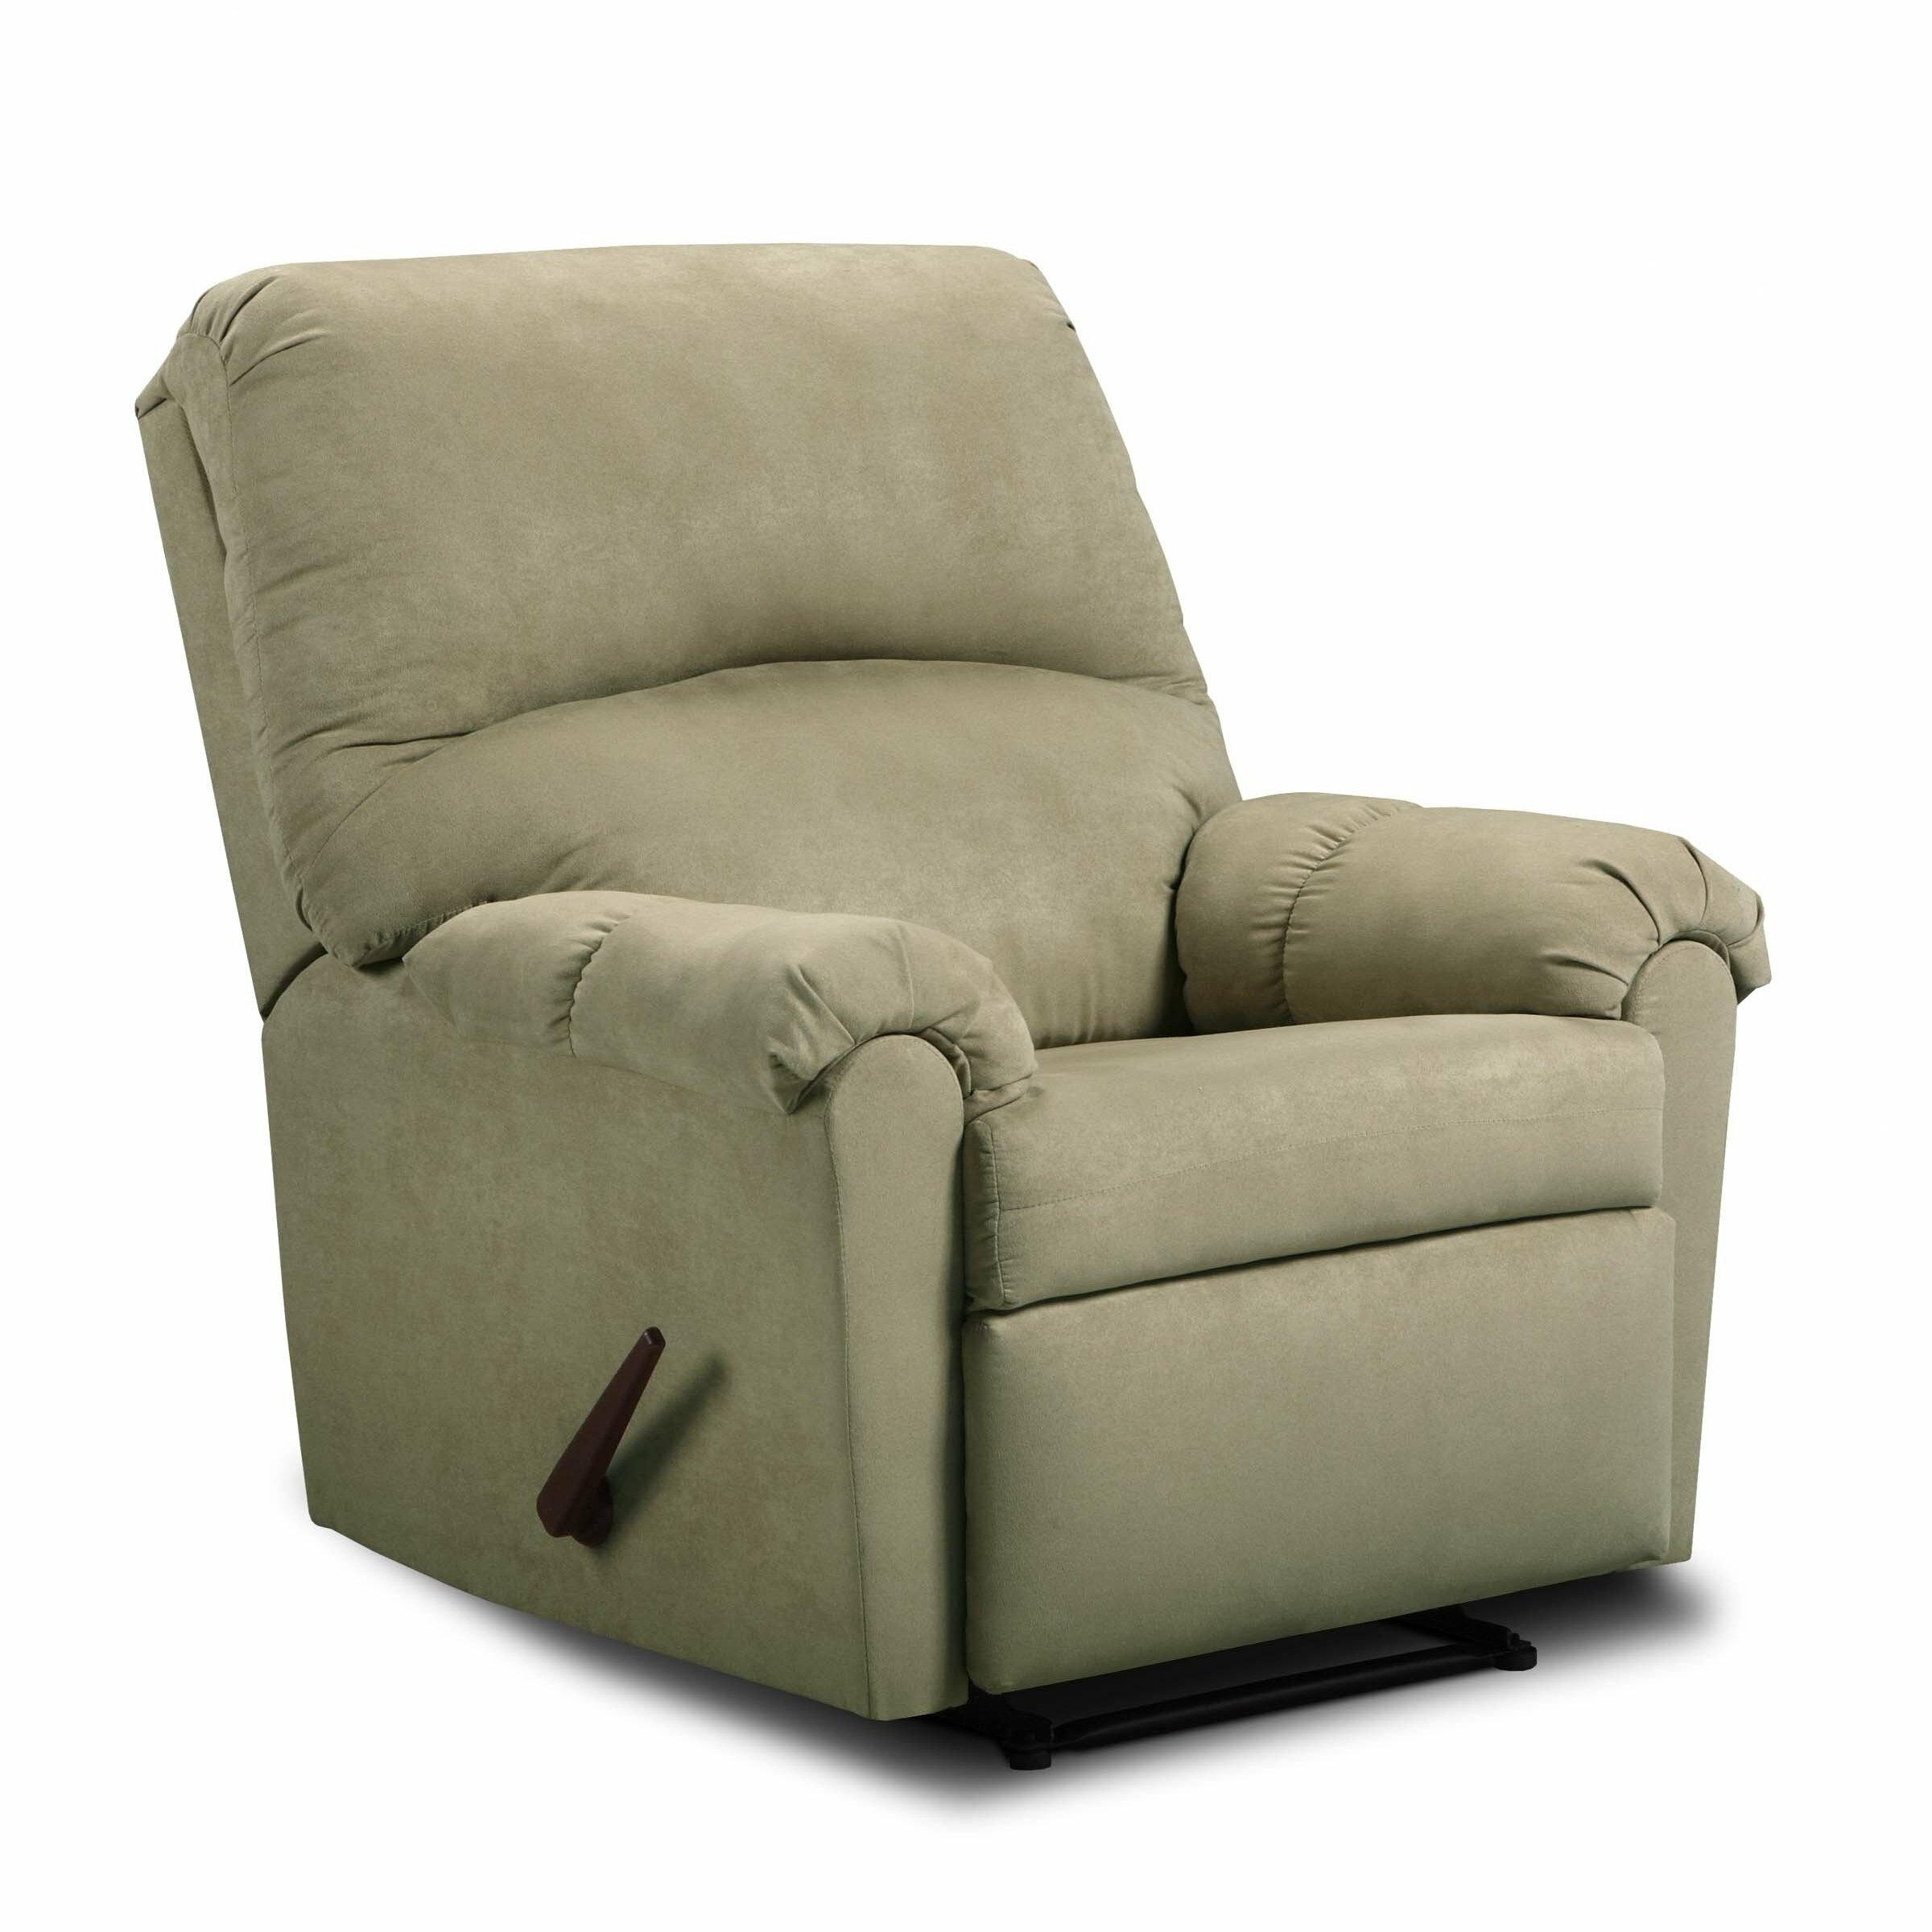 Grey Chair Slipcovers | Recliner Covers | Couch Covers for Reclining Couch  sc 1 st  Marccharlessteakhouse.com & Furniture u0026 Rug: Chic Recliner Covers For Prettier Recliner Ideas ... islam-shia.org